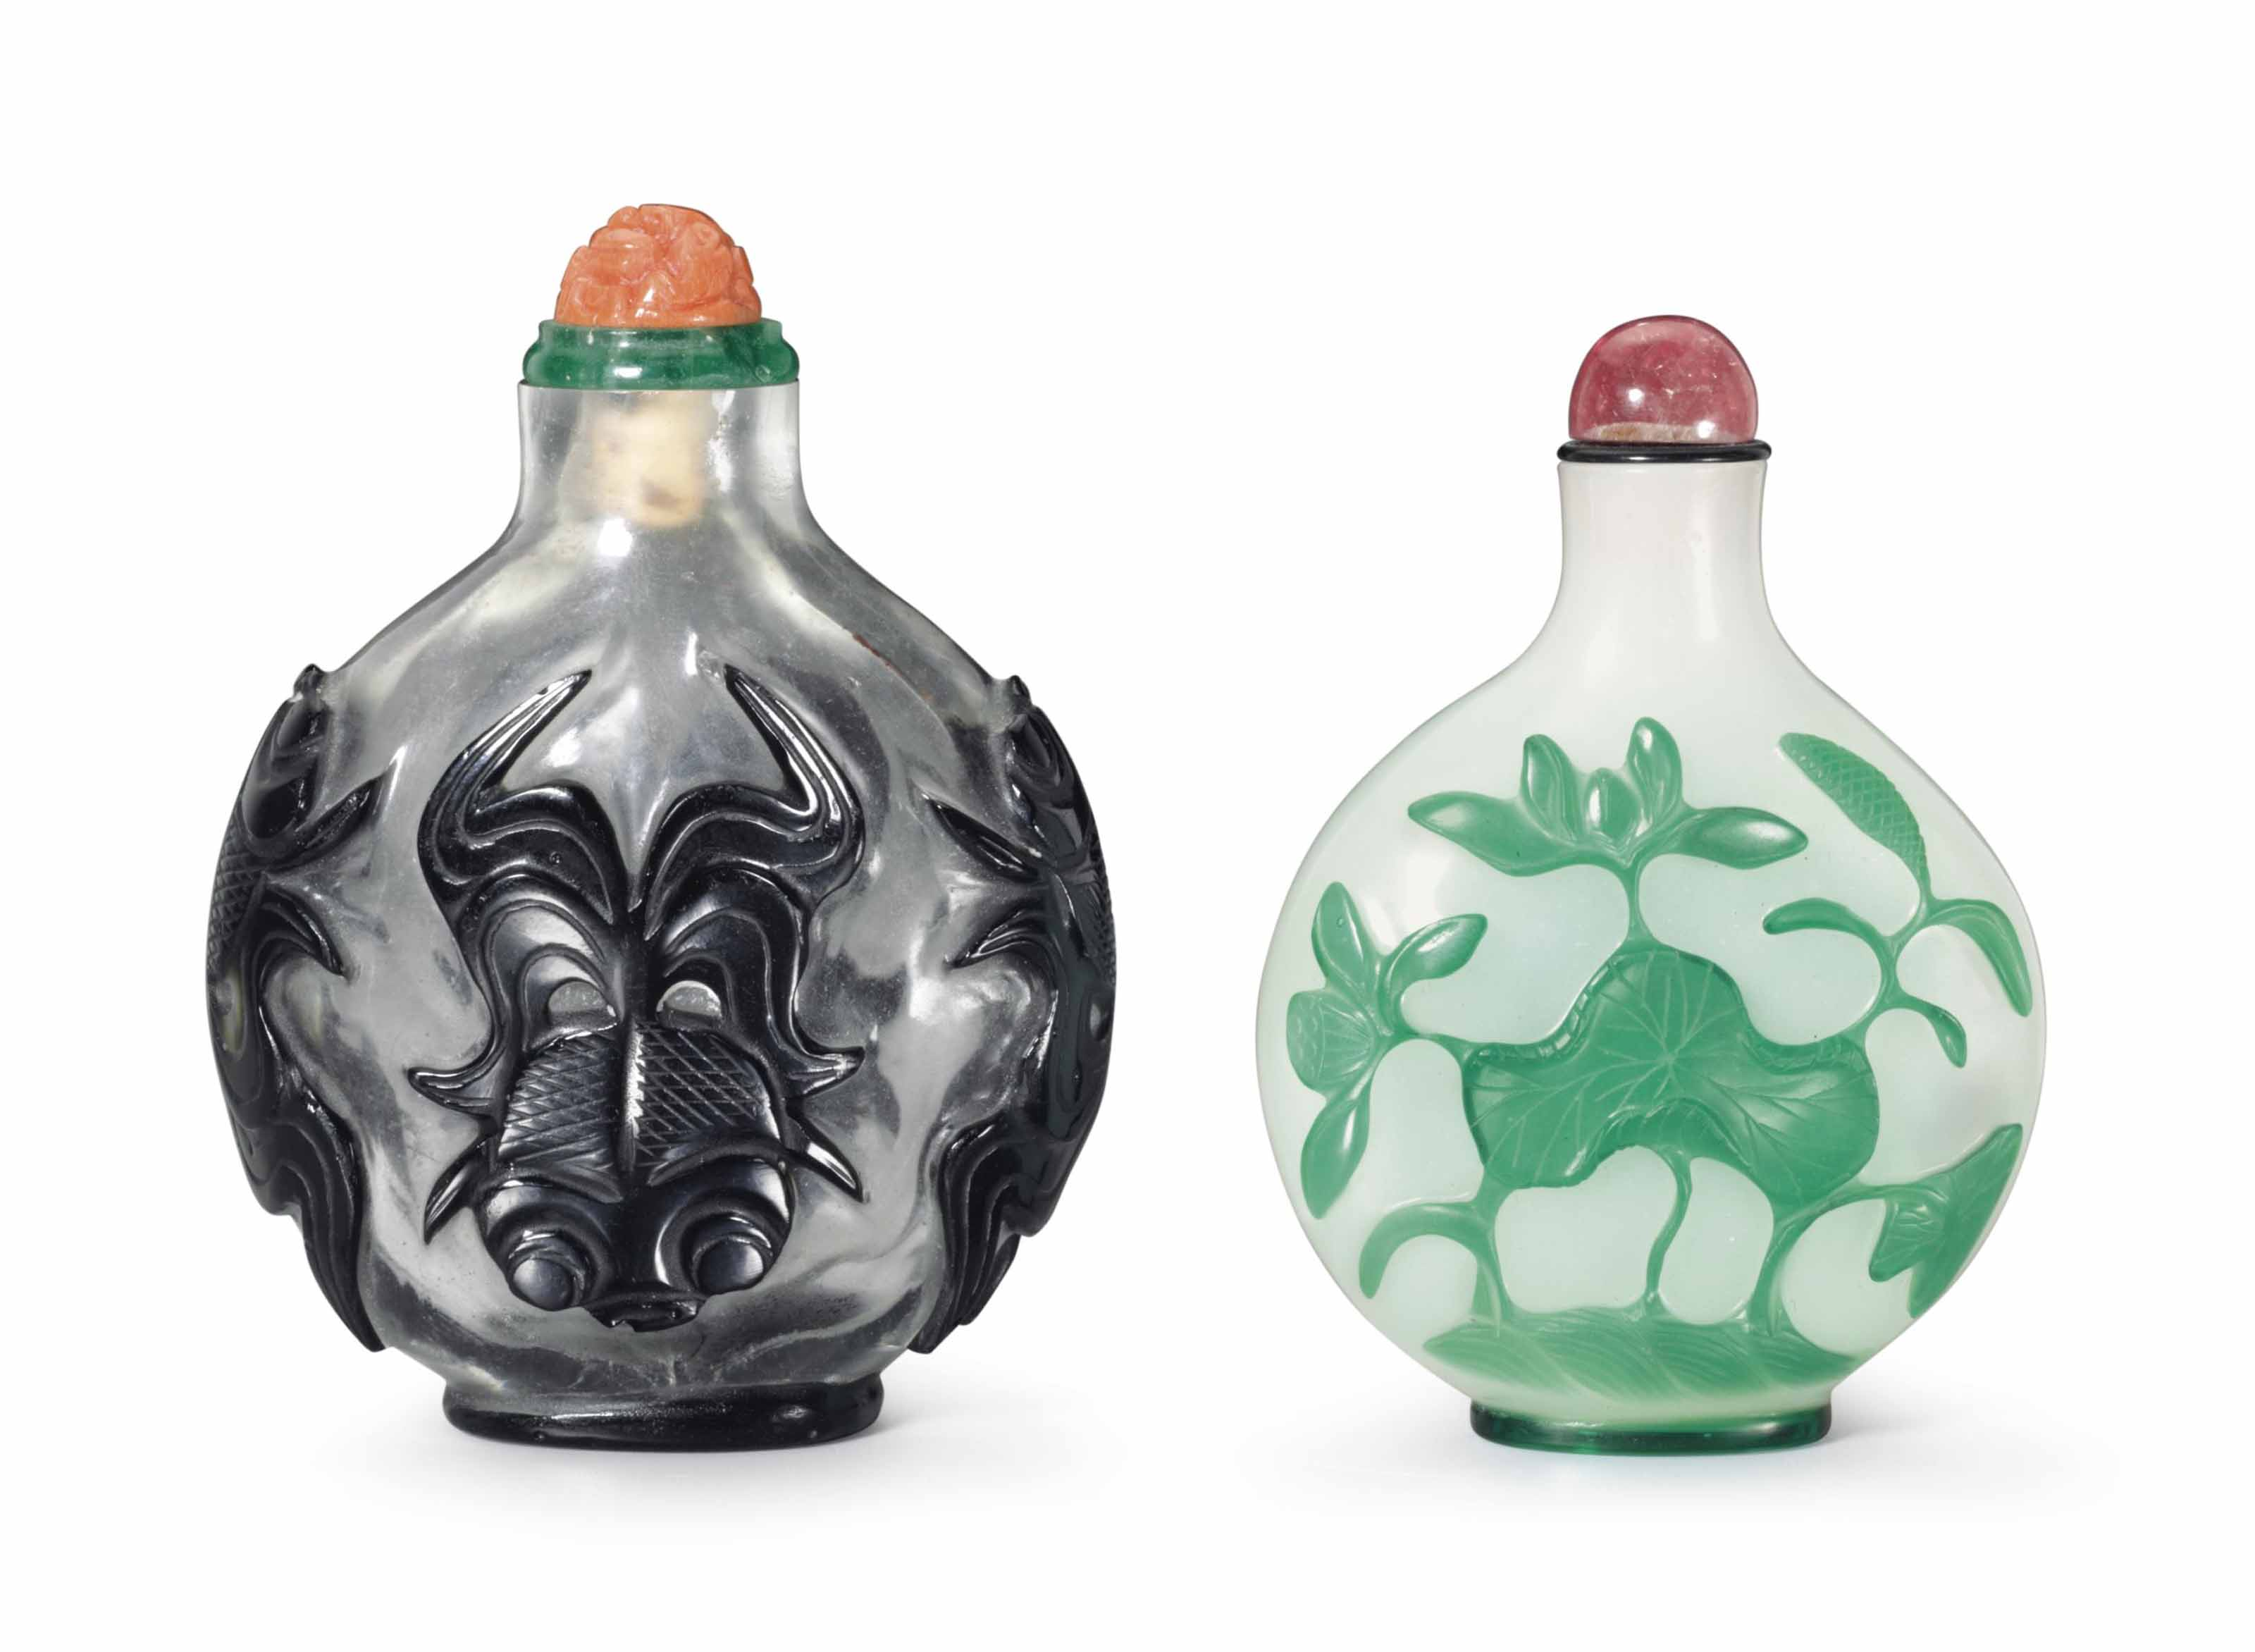 TWO OVERLAY GLASS SNUFF BOTTLE